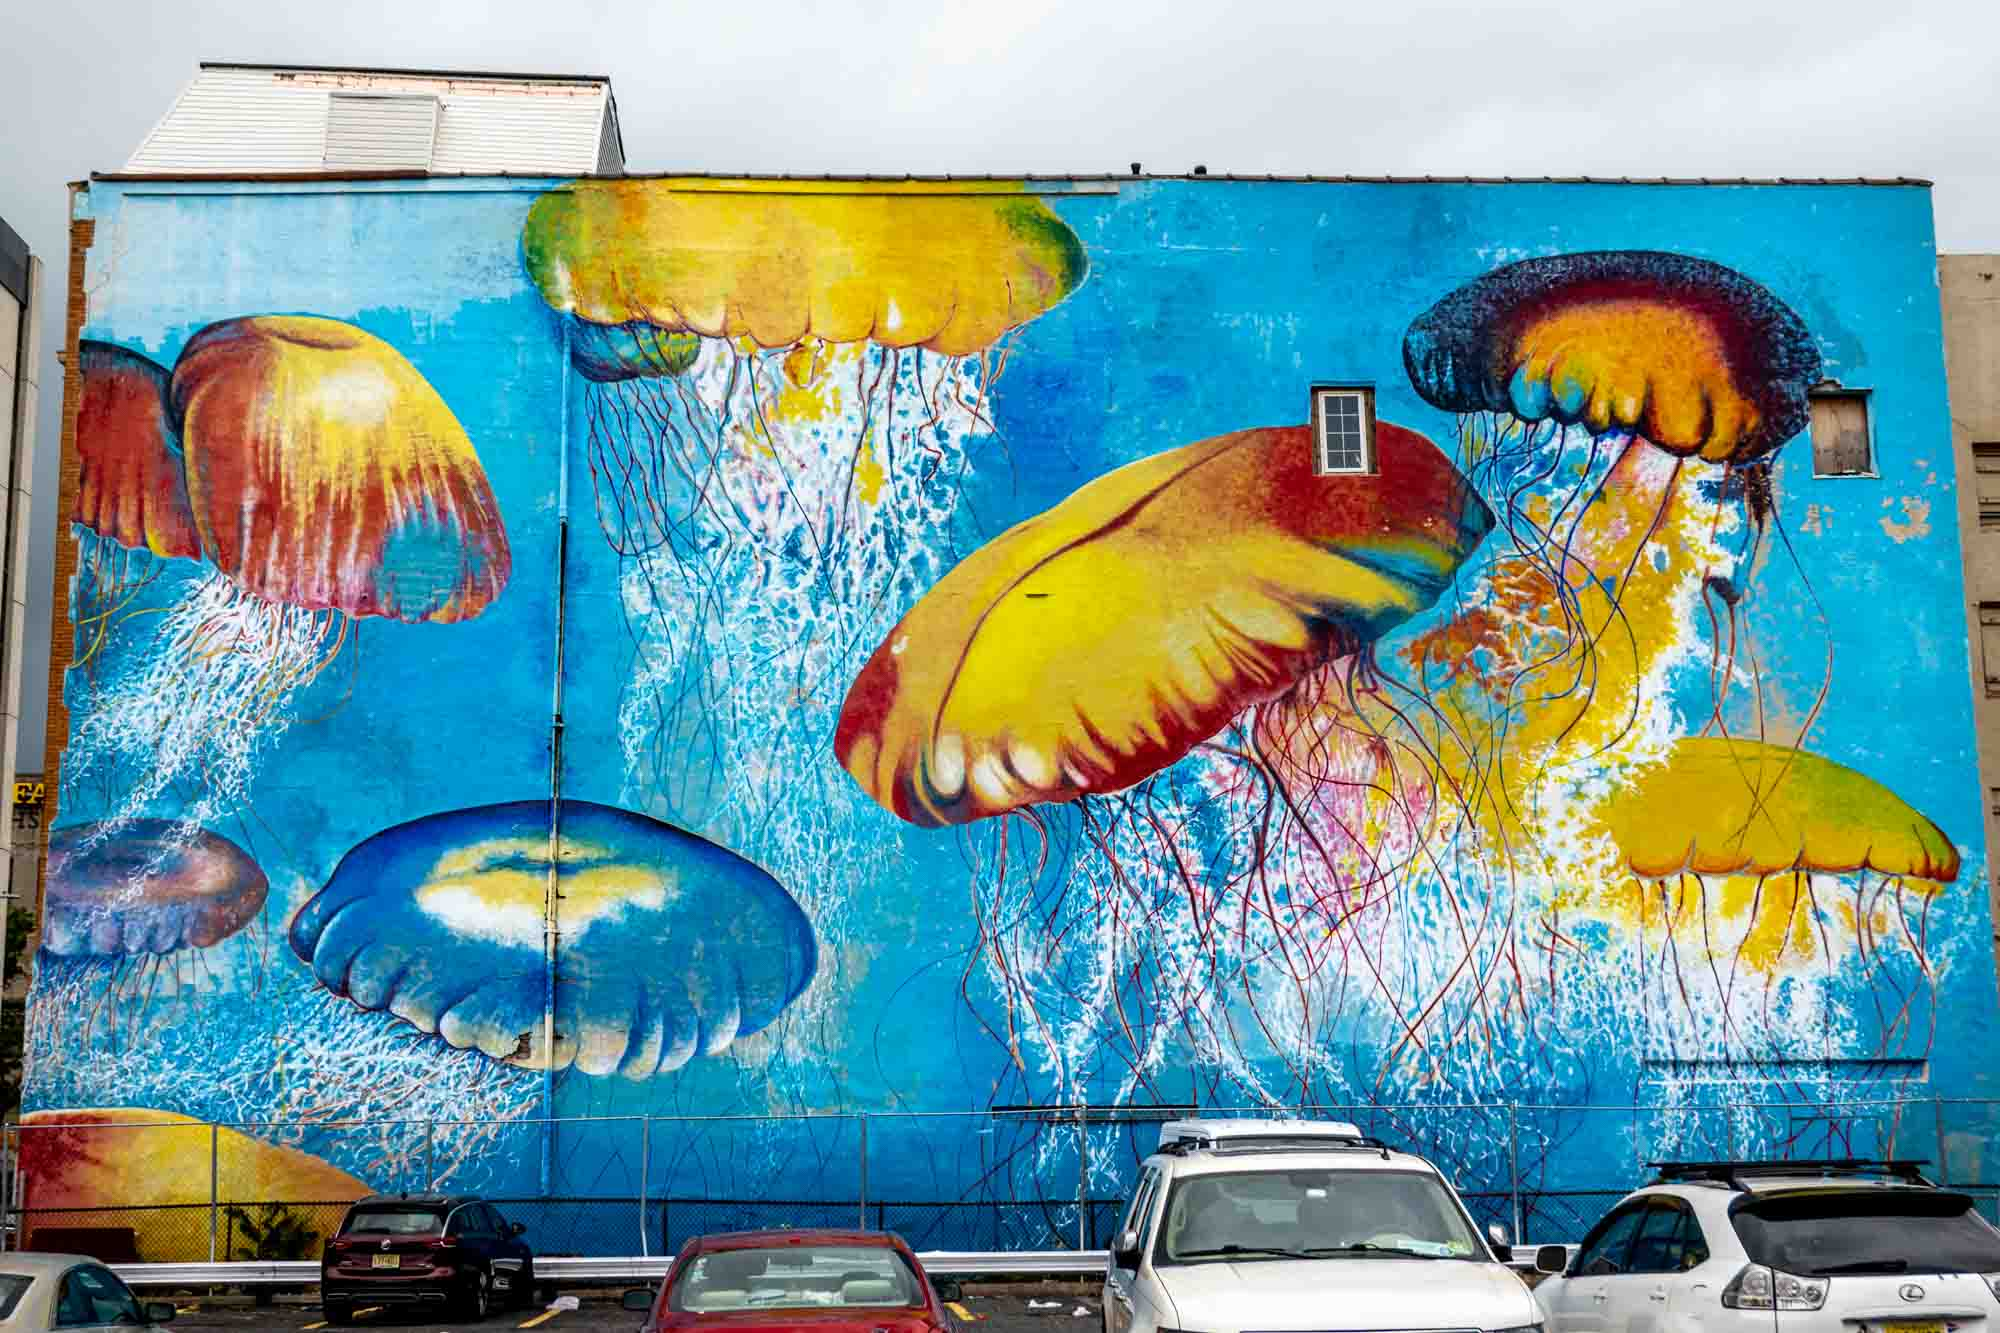 Mural of jellyfish in parking lot